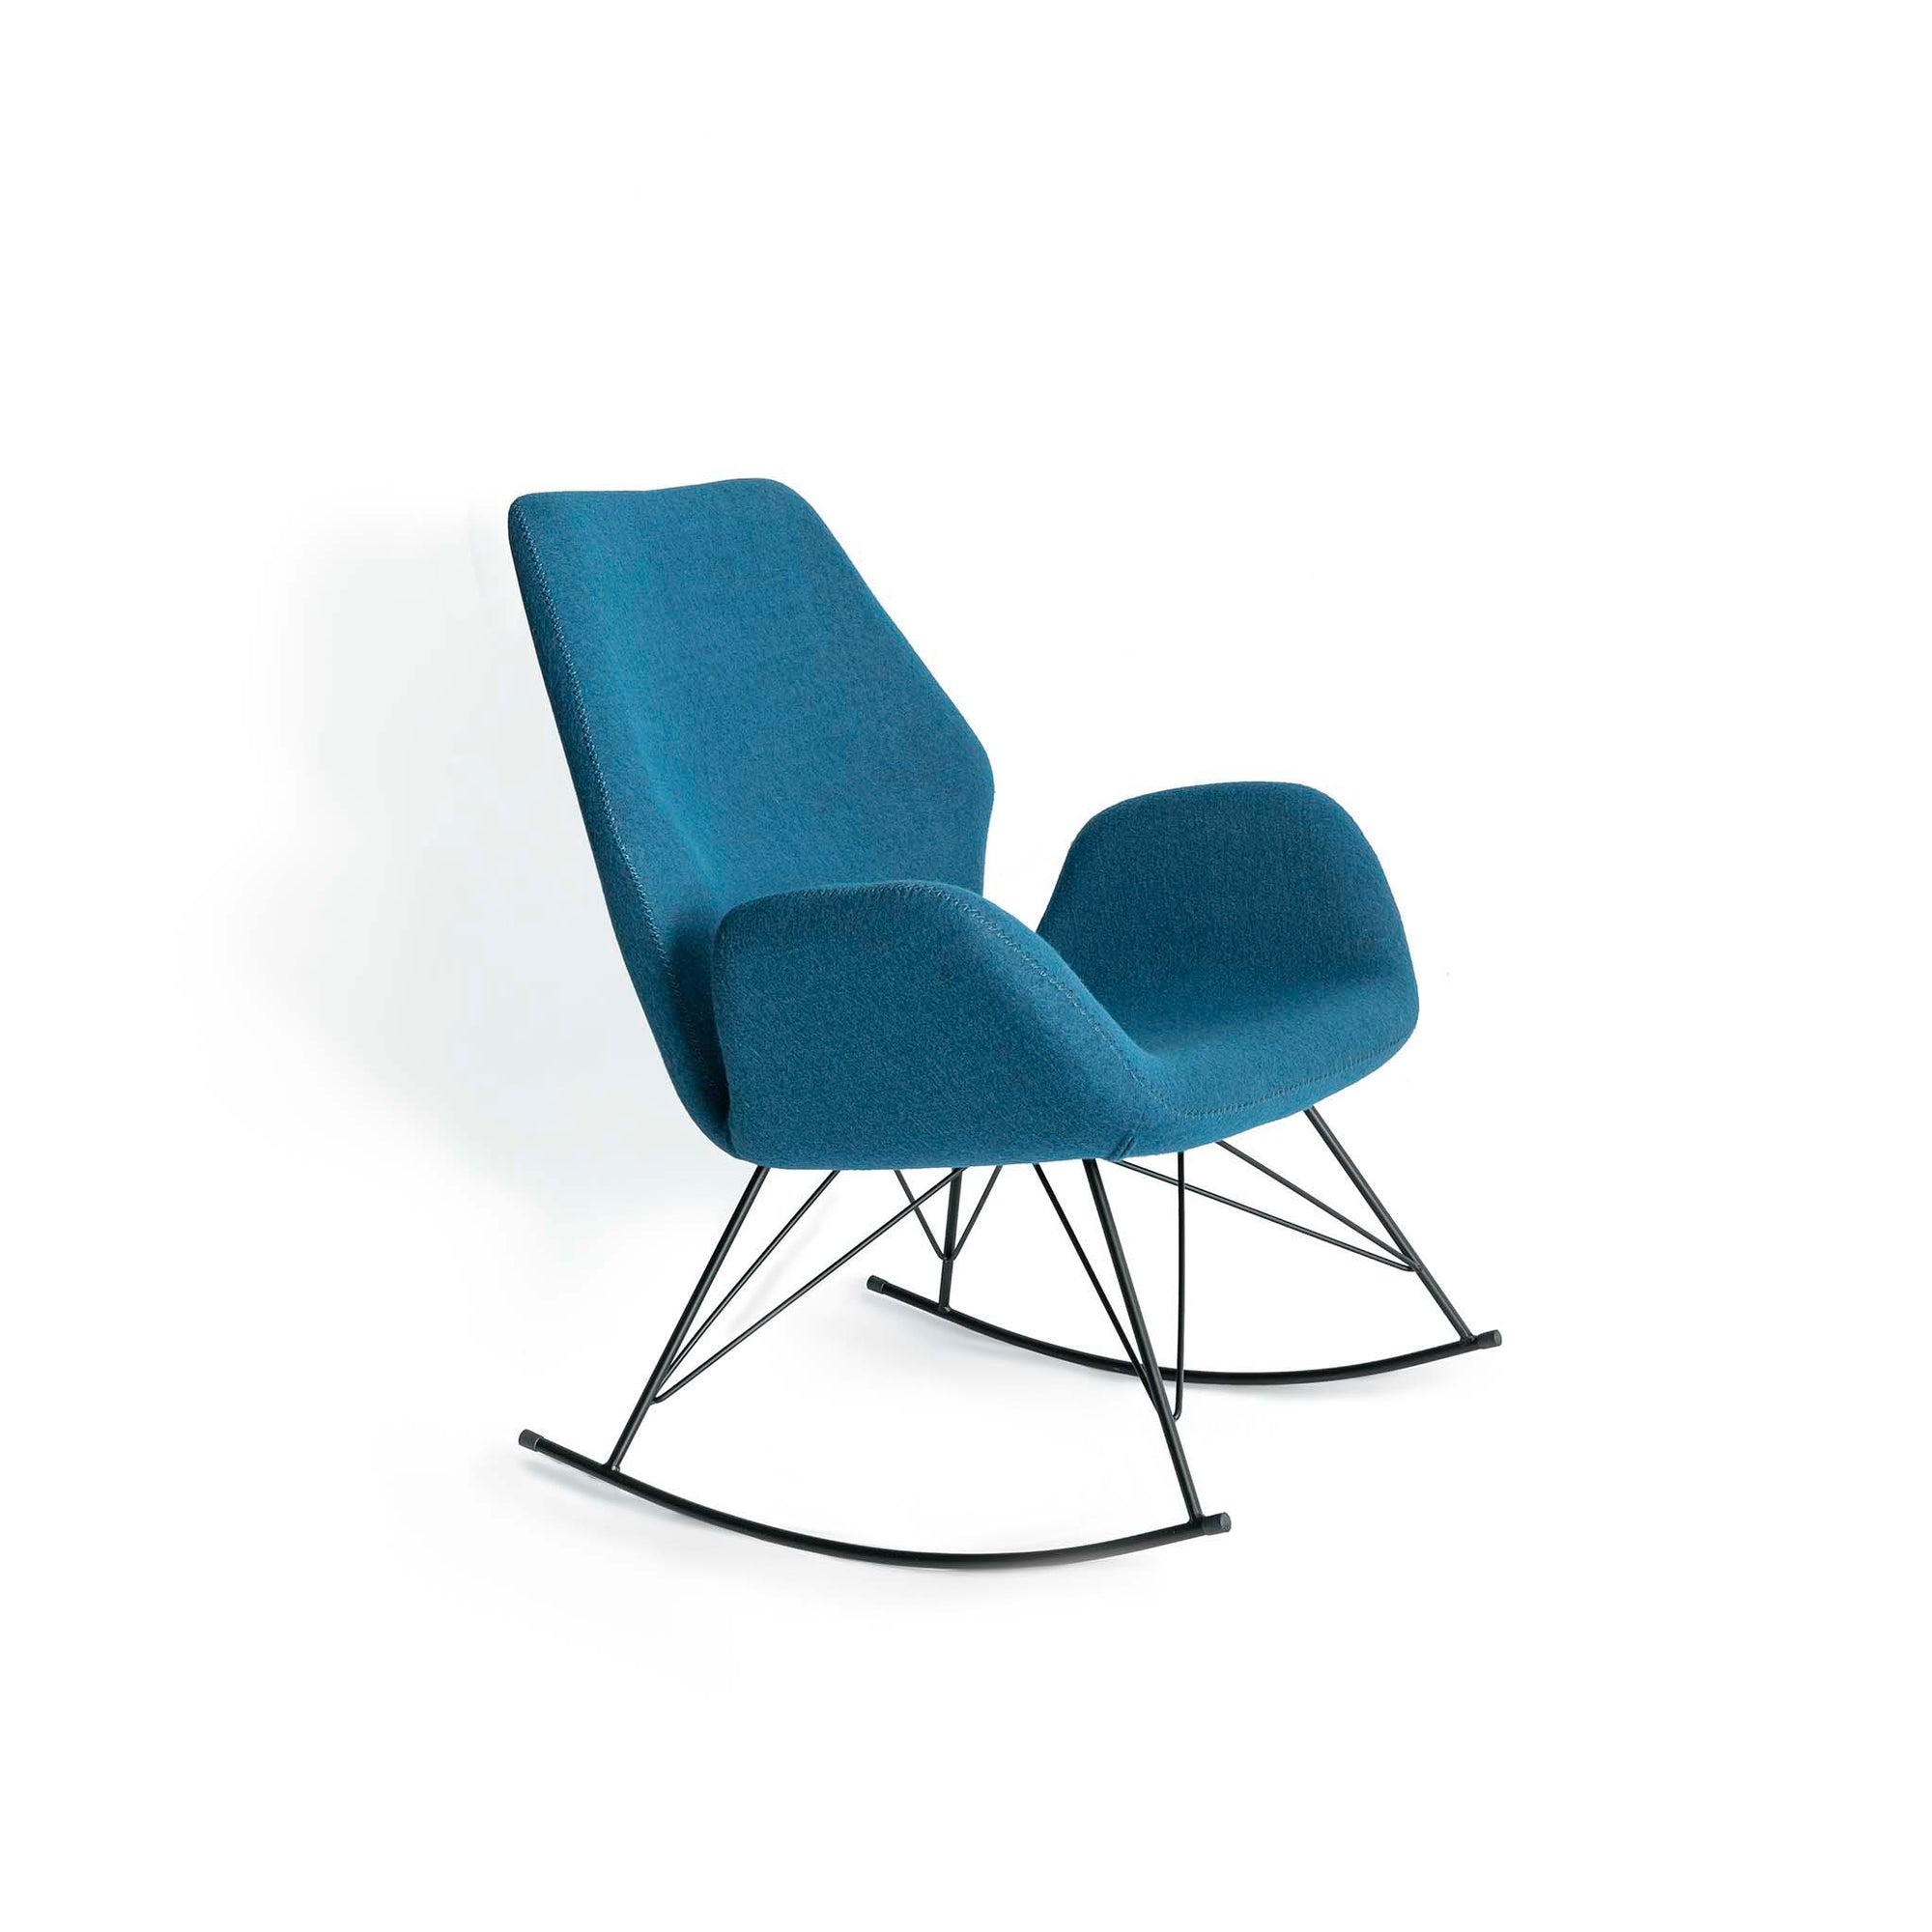 Bryce Petrol Blue Rocking Chair - Side view